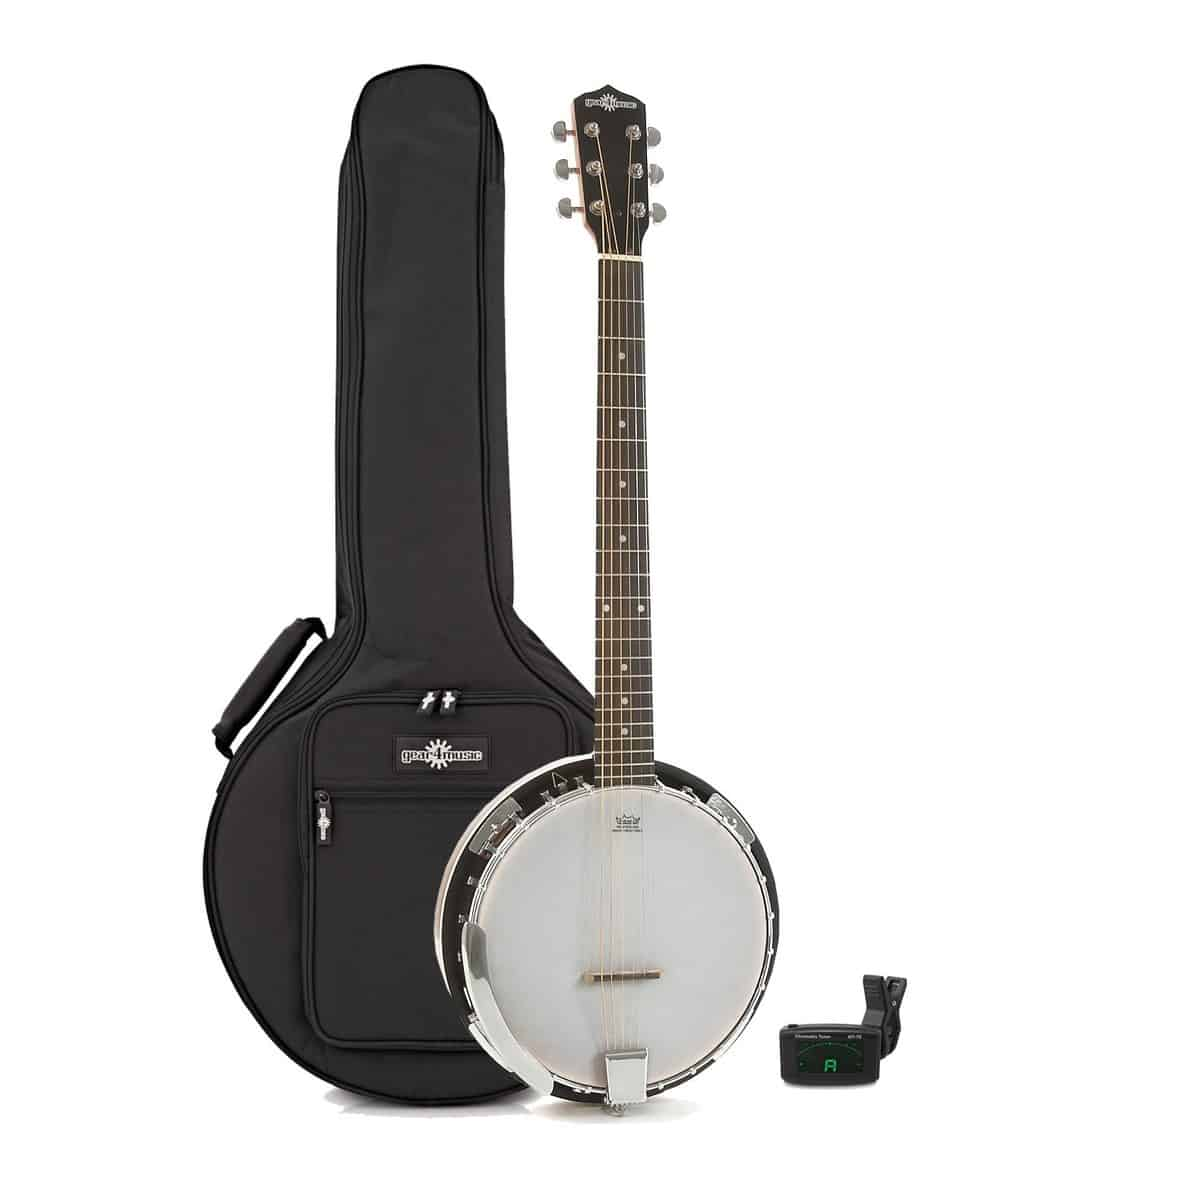 Gear4music 6 String Guitar Banjo Pack Review and Guide